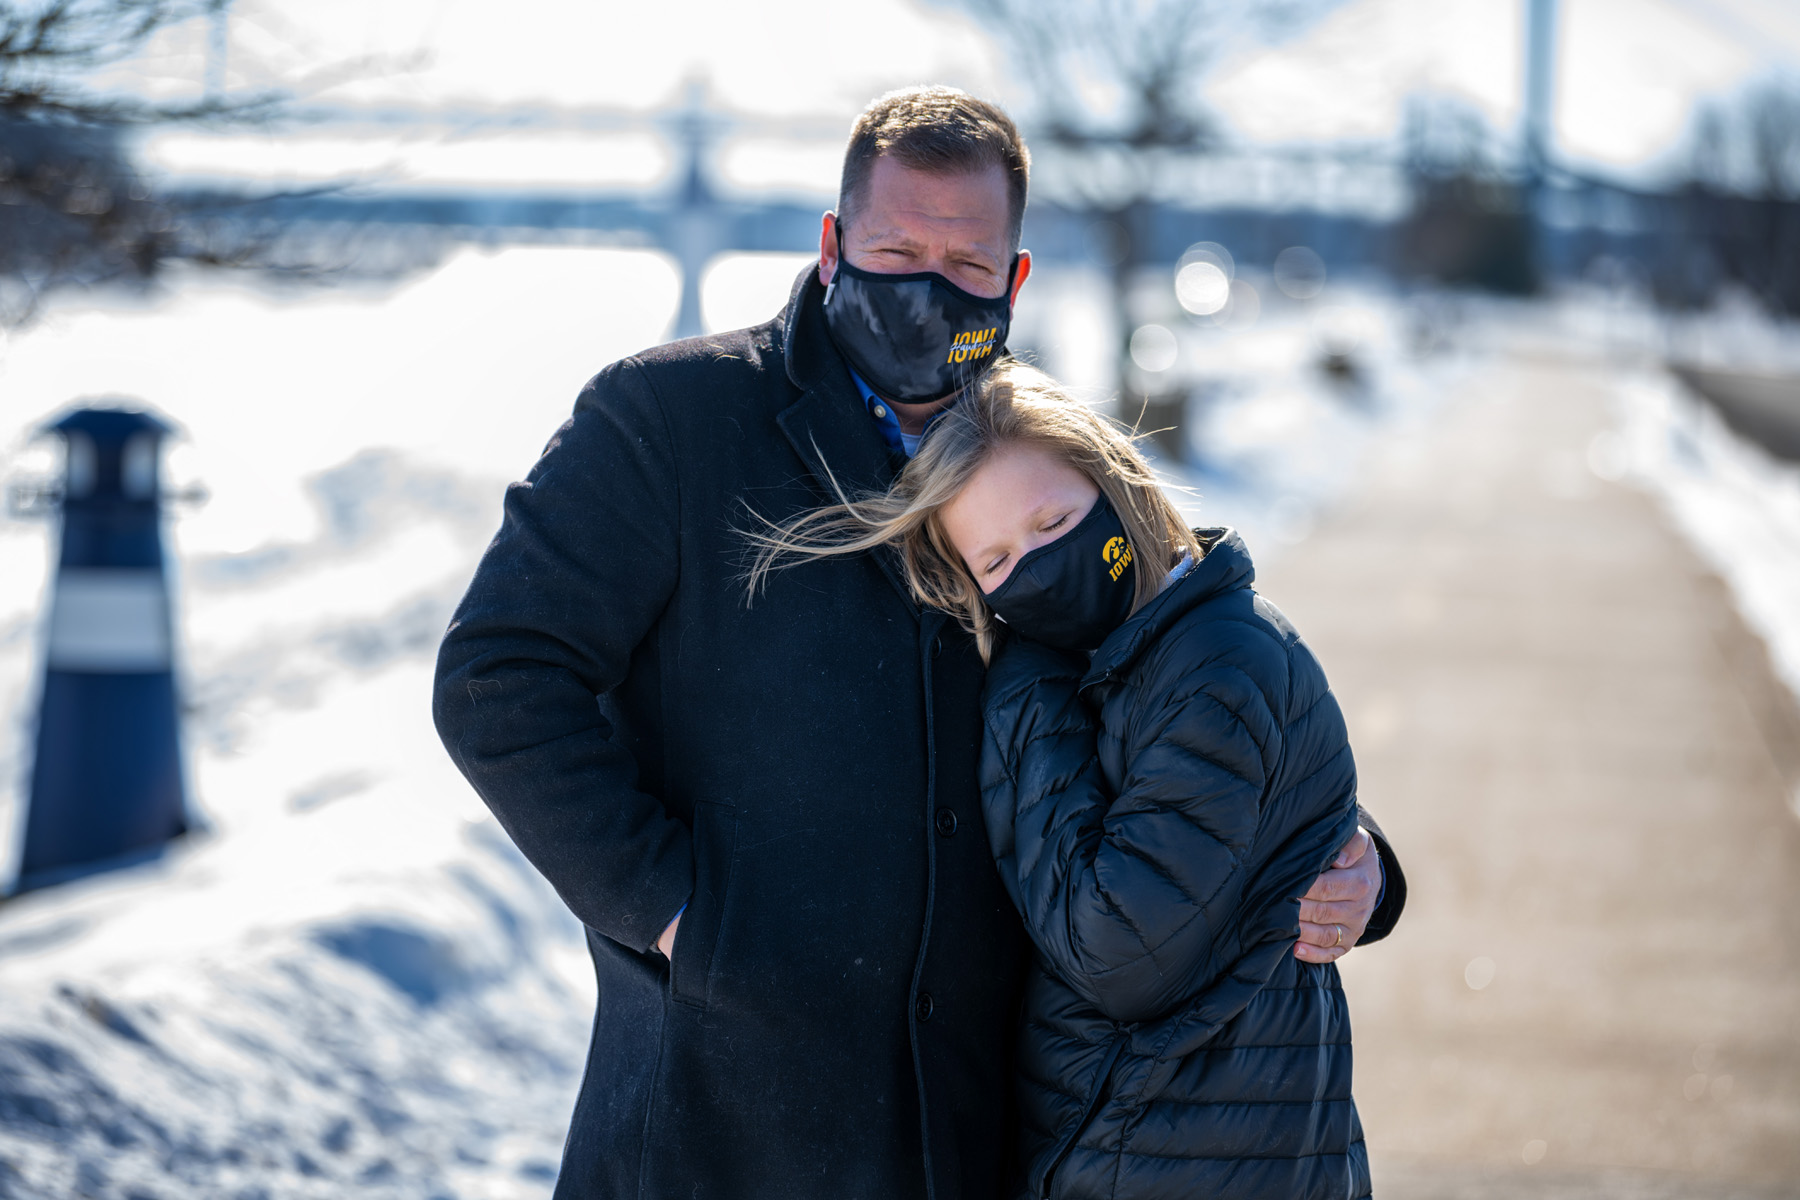 Daniel Ivory and his daughter Lydia wearing face masks with Tiger hawk logos, standing outdoors on a sunny winter day